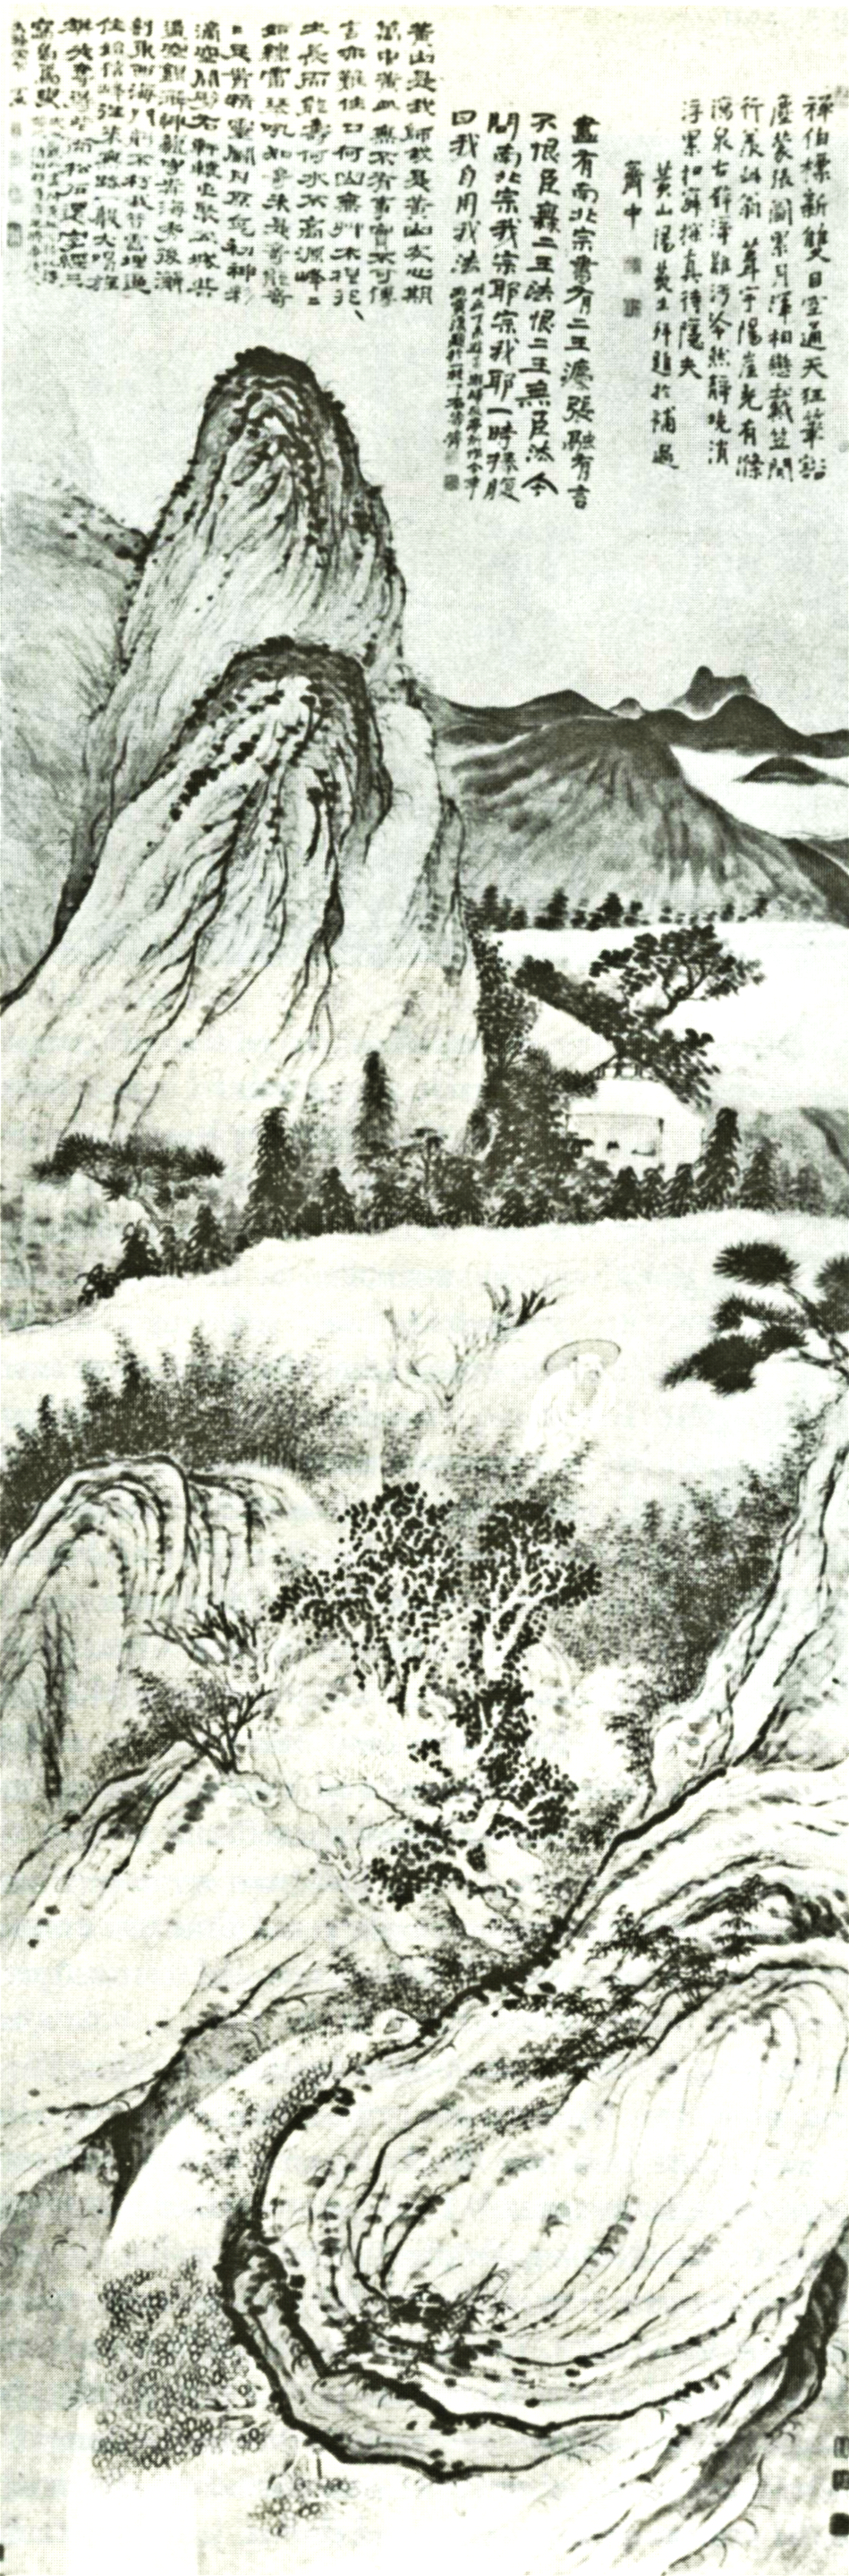 Mount Huang , hanging scroll, 1667. Ink and color on paper. Dimensions and whereabouts unknown.